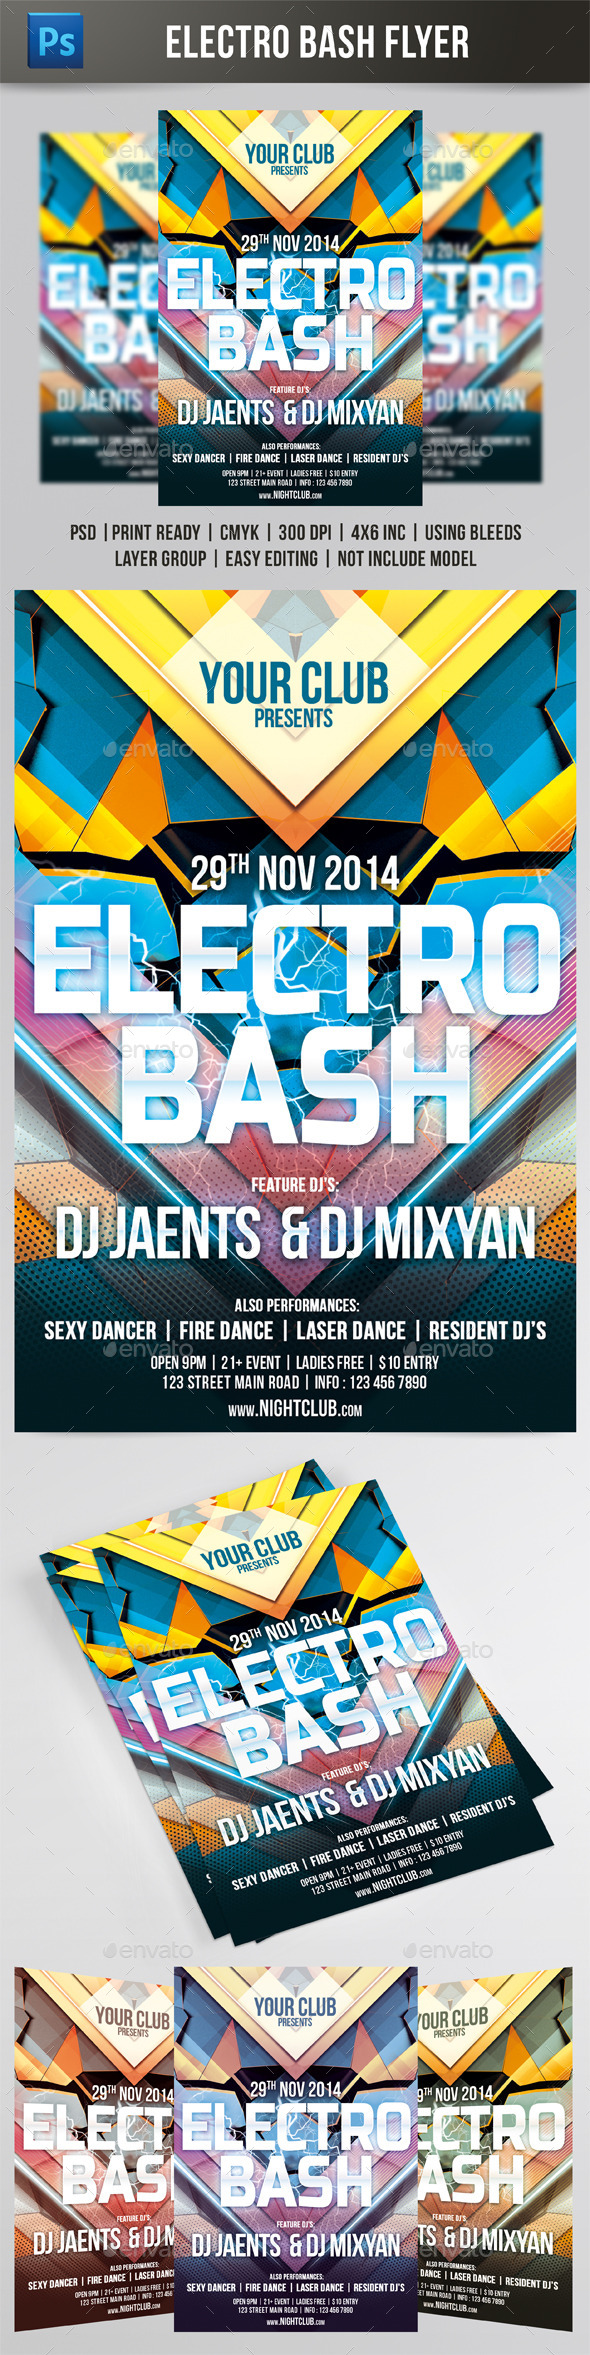 GraphicRiver Electro Bash Flyer 8854144